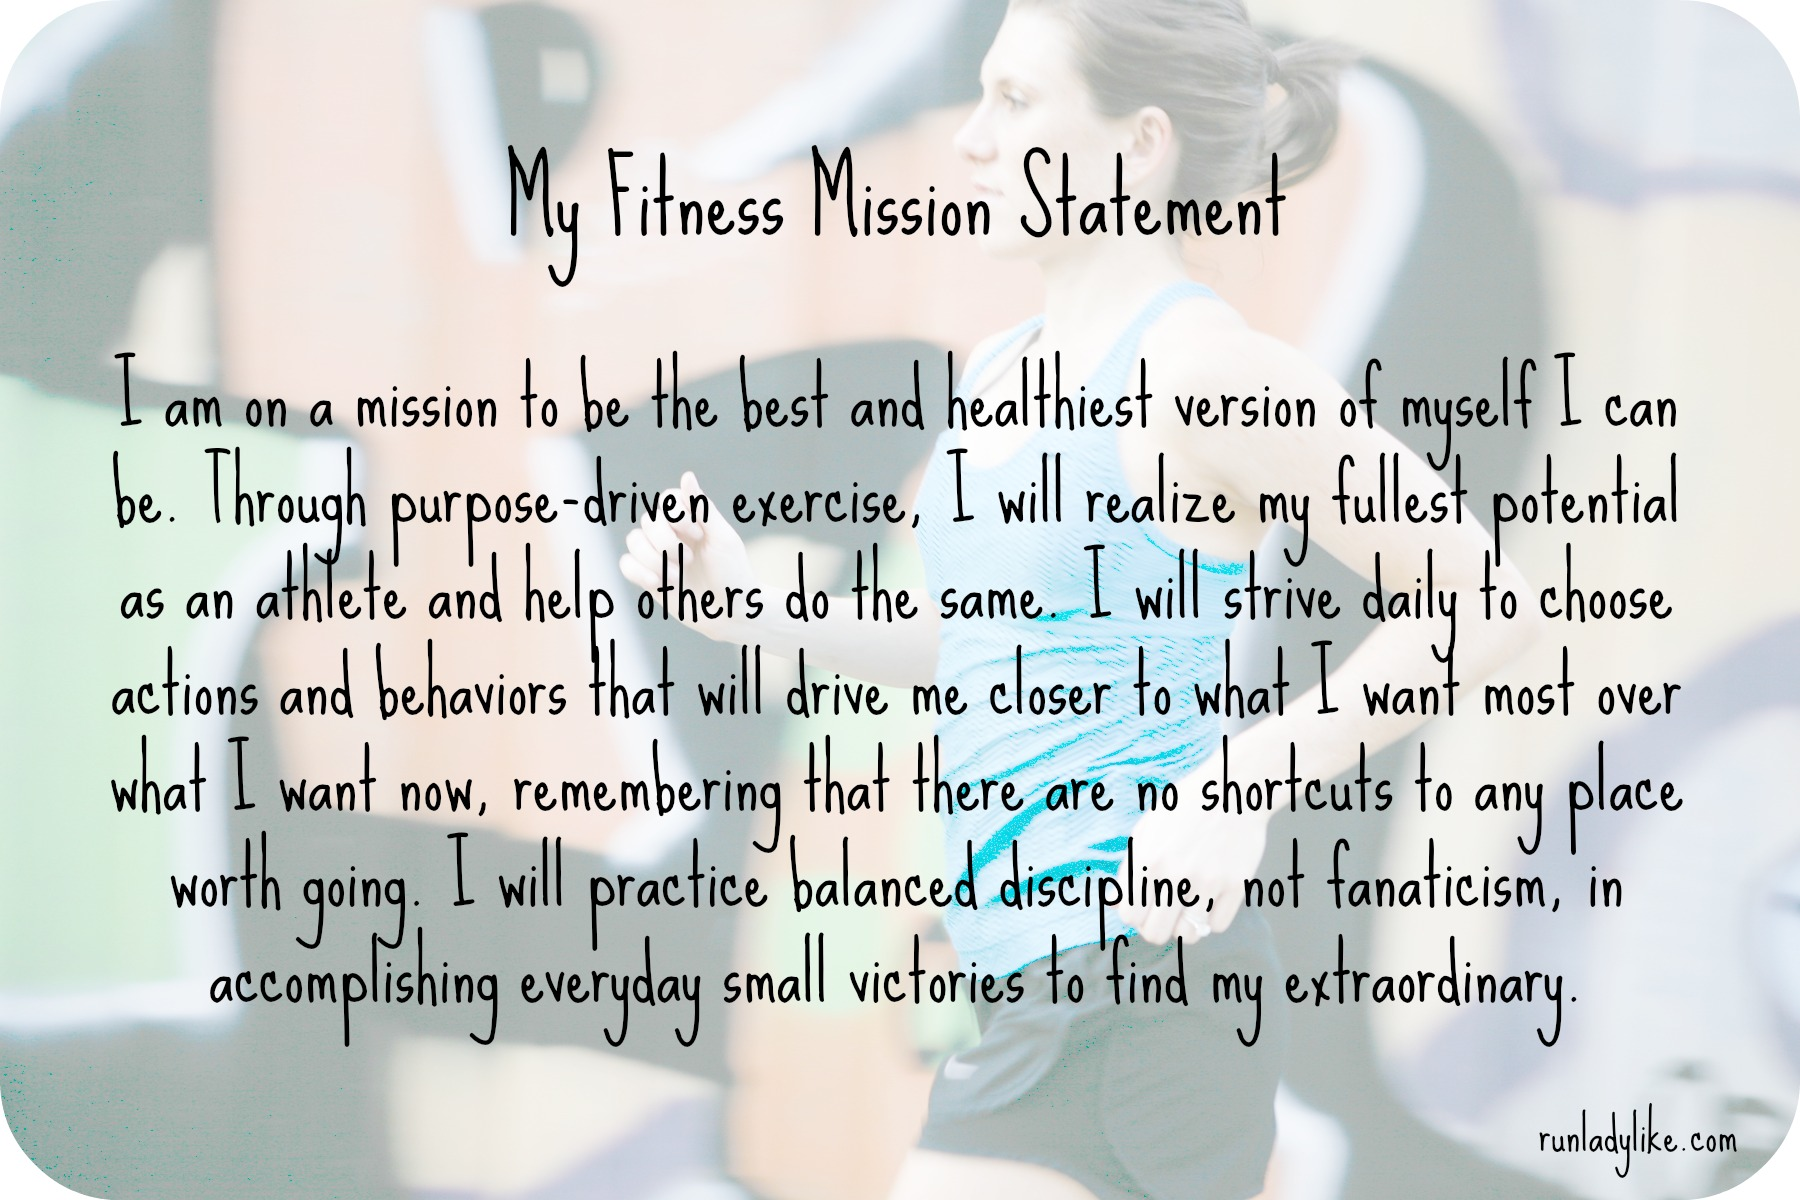 my fitness mission statement runladylike s fitness mission statement